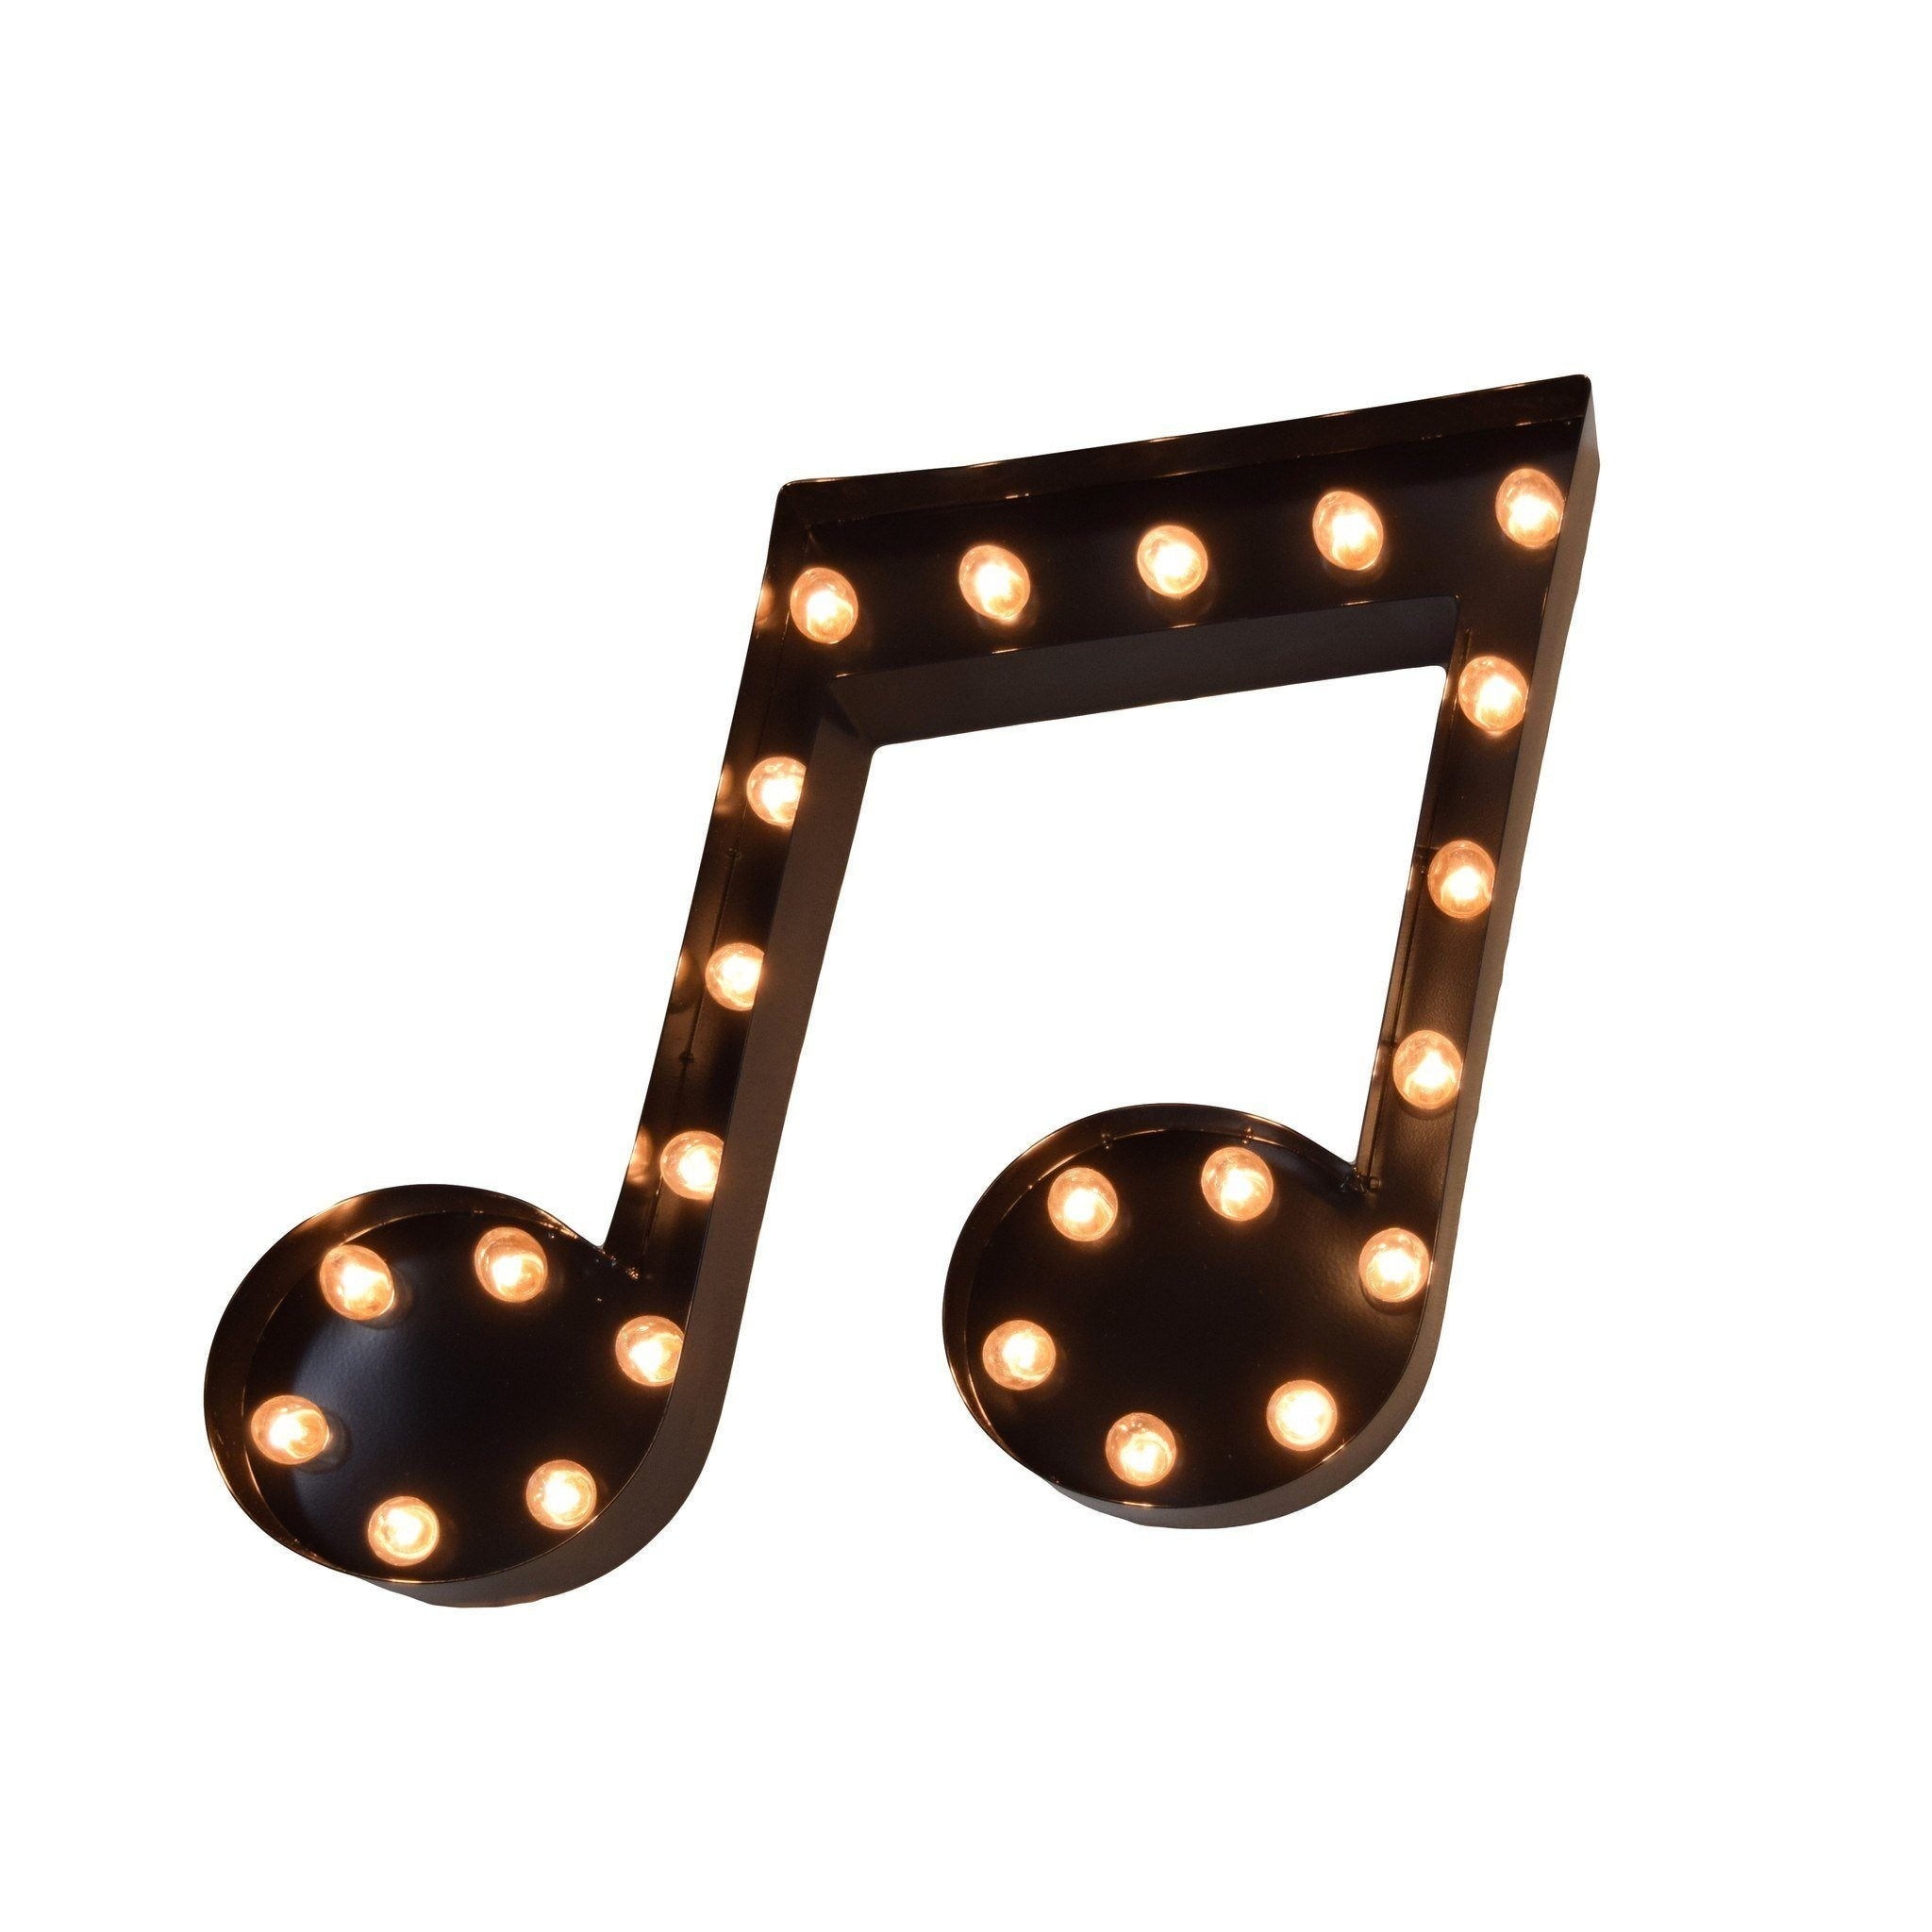 Music note vintage marquee lights sign black finish buy marquee symbol lights music note vintage marquee lights sign black finish buycottarizona